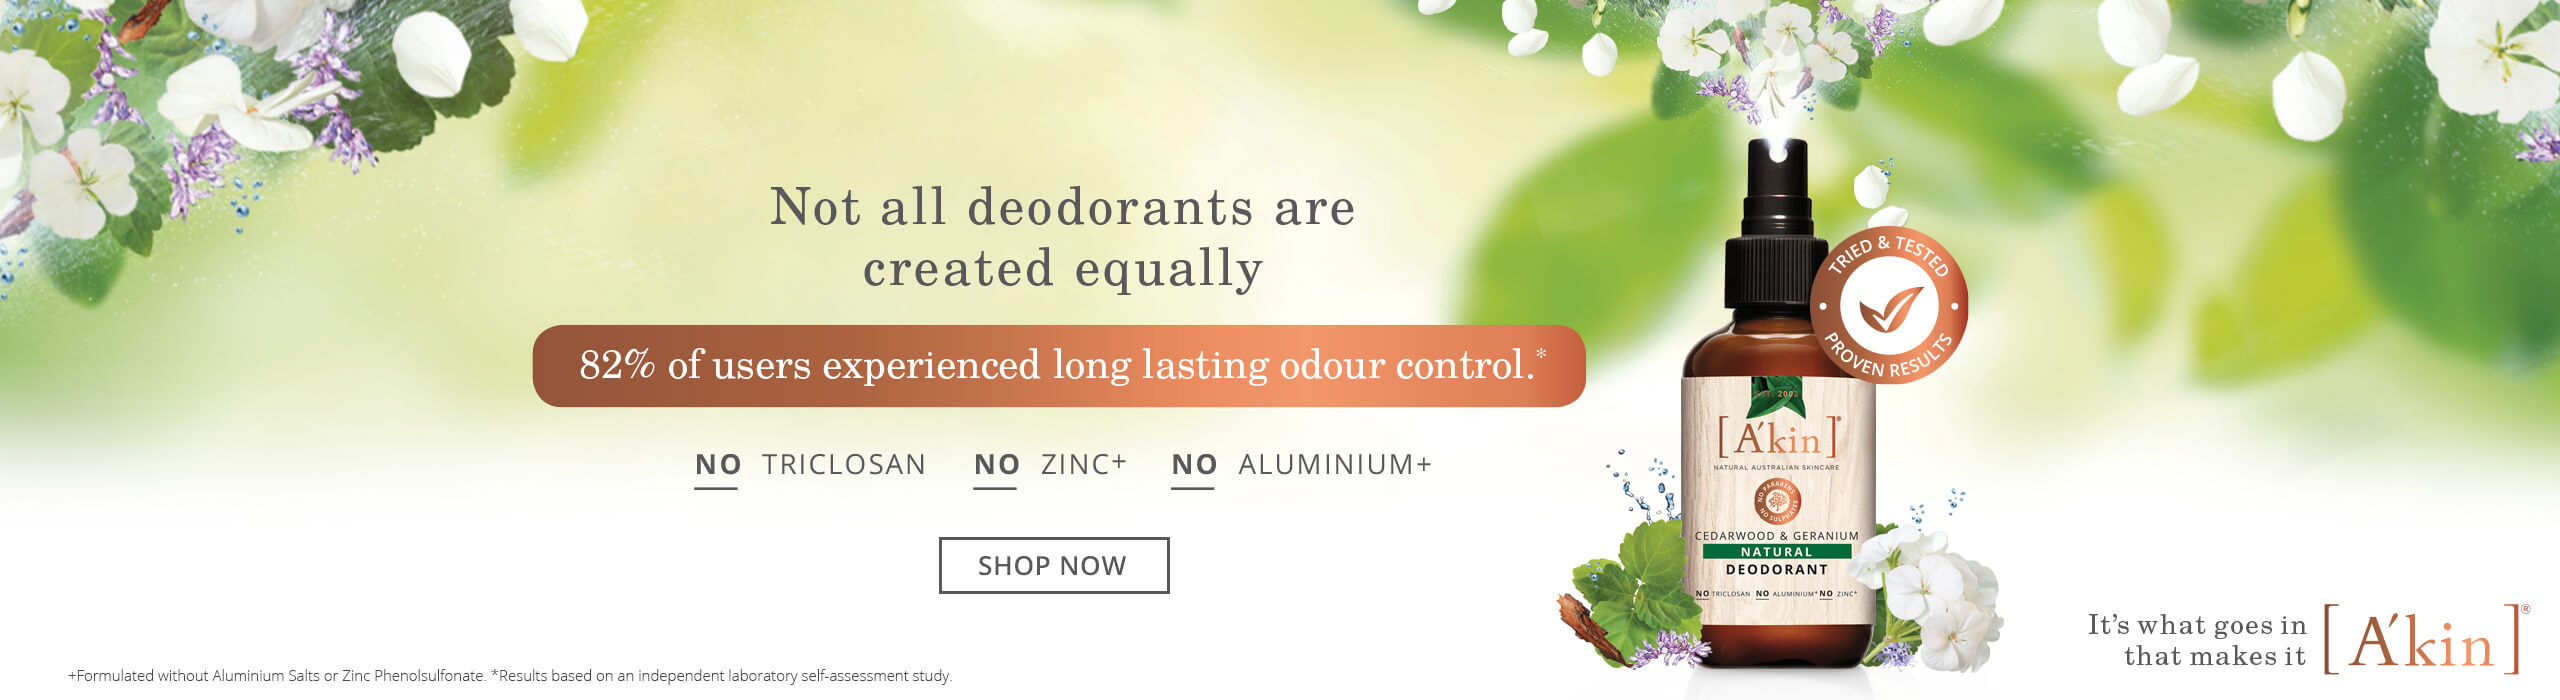 Not all deodorants are created equally. No Triclosan. No Zinc+ No Aluminium+. Make the switch to natural with A'kin Natural Deodorant, providing effective odour control, naturally. With an essential oil blend of Geranium, Cedarwood & Patchouli. 82% of users experienced long lasting odour control.